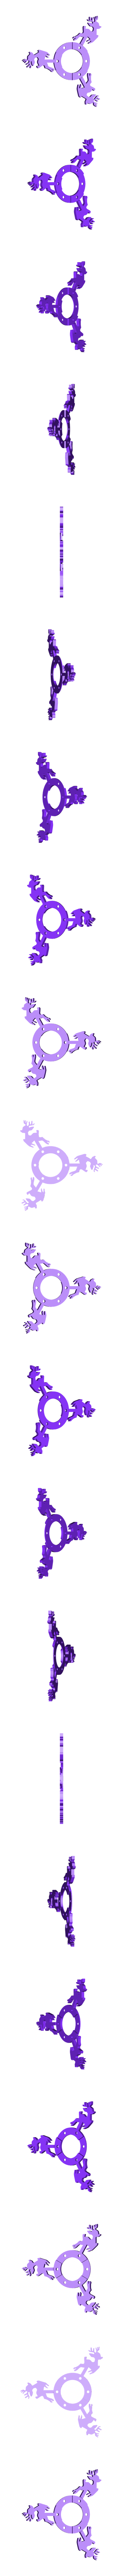 Xmas_Spinner_-_Reindeer.stl Download free STL file Christmas Spinners • Model to 3D print, Zippityboomba